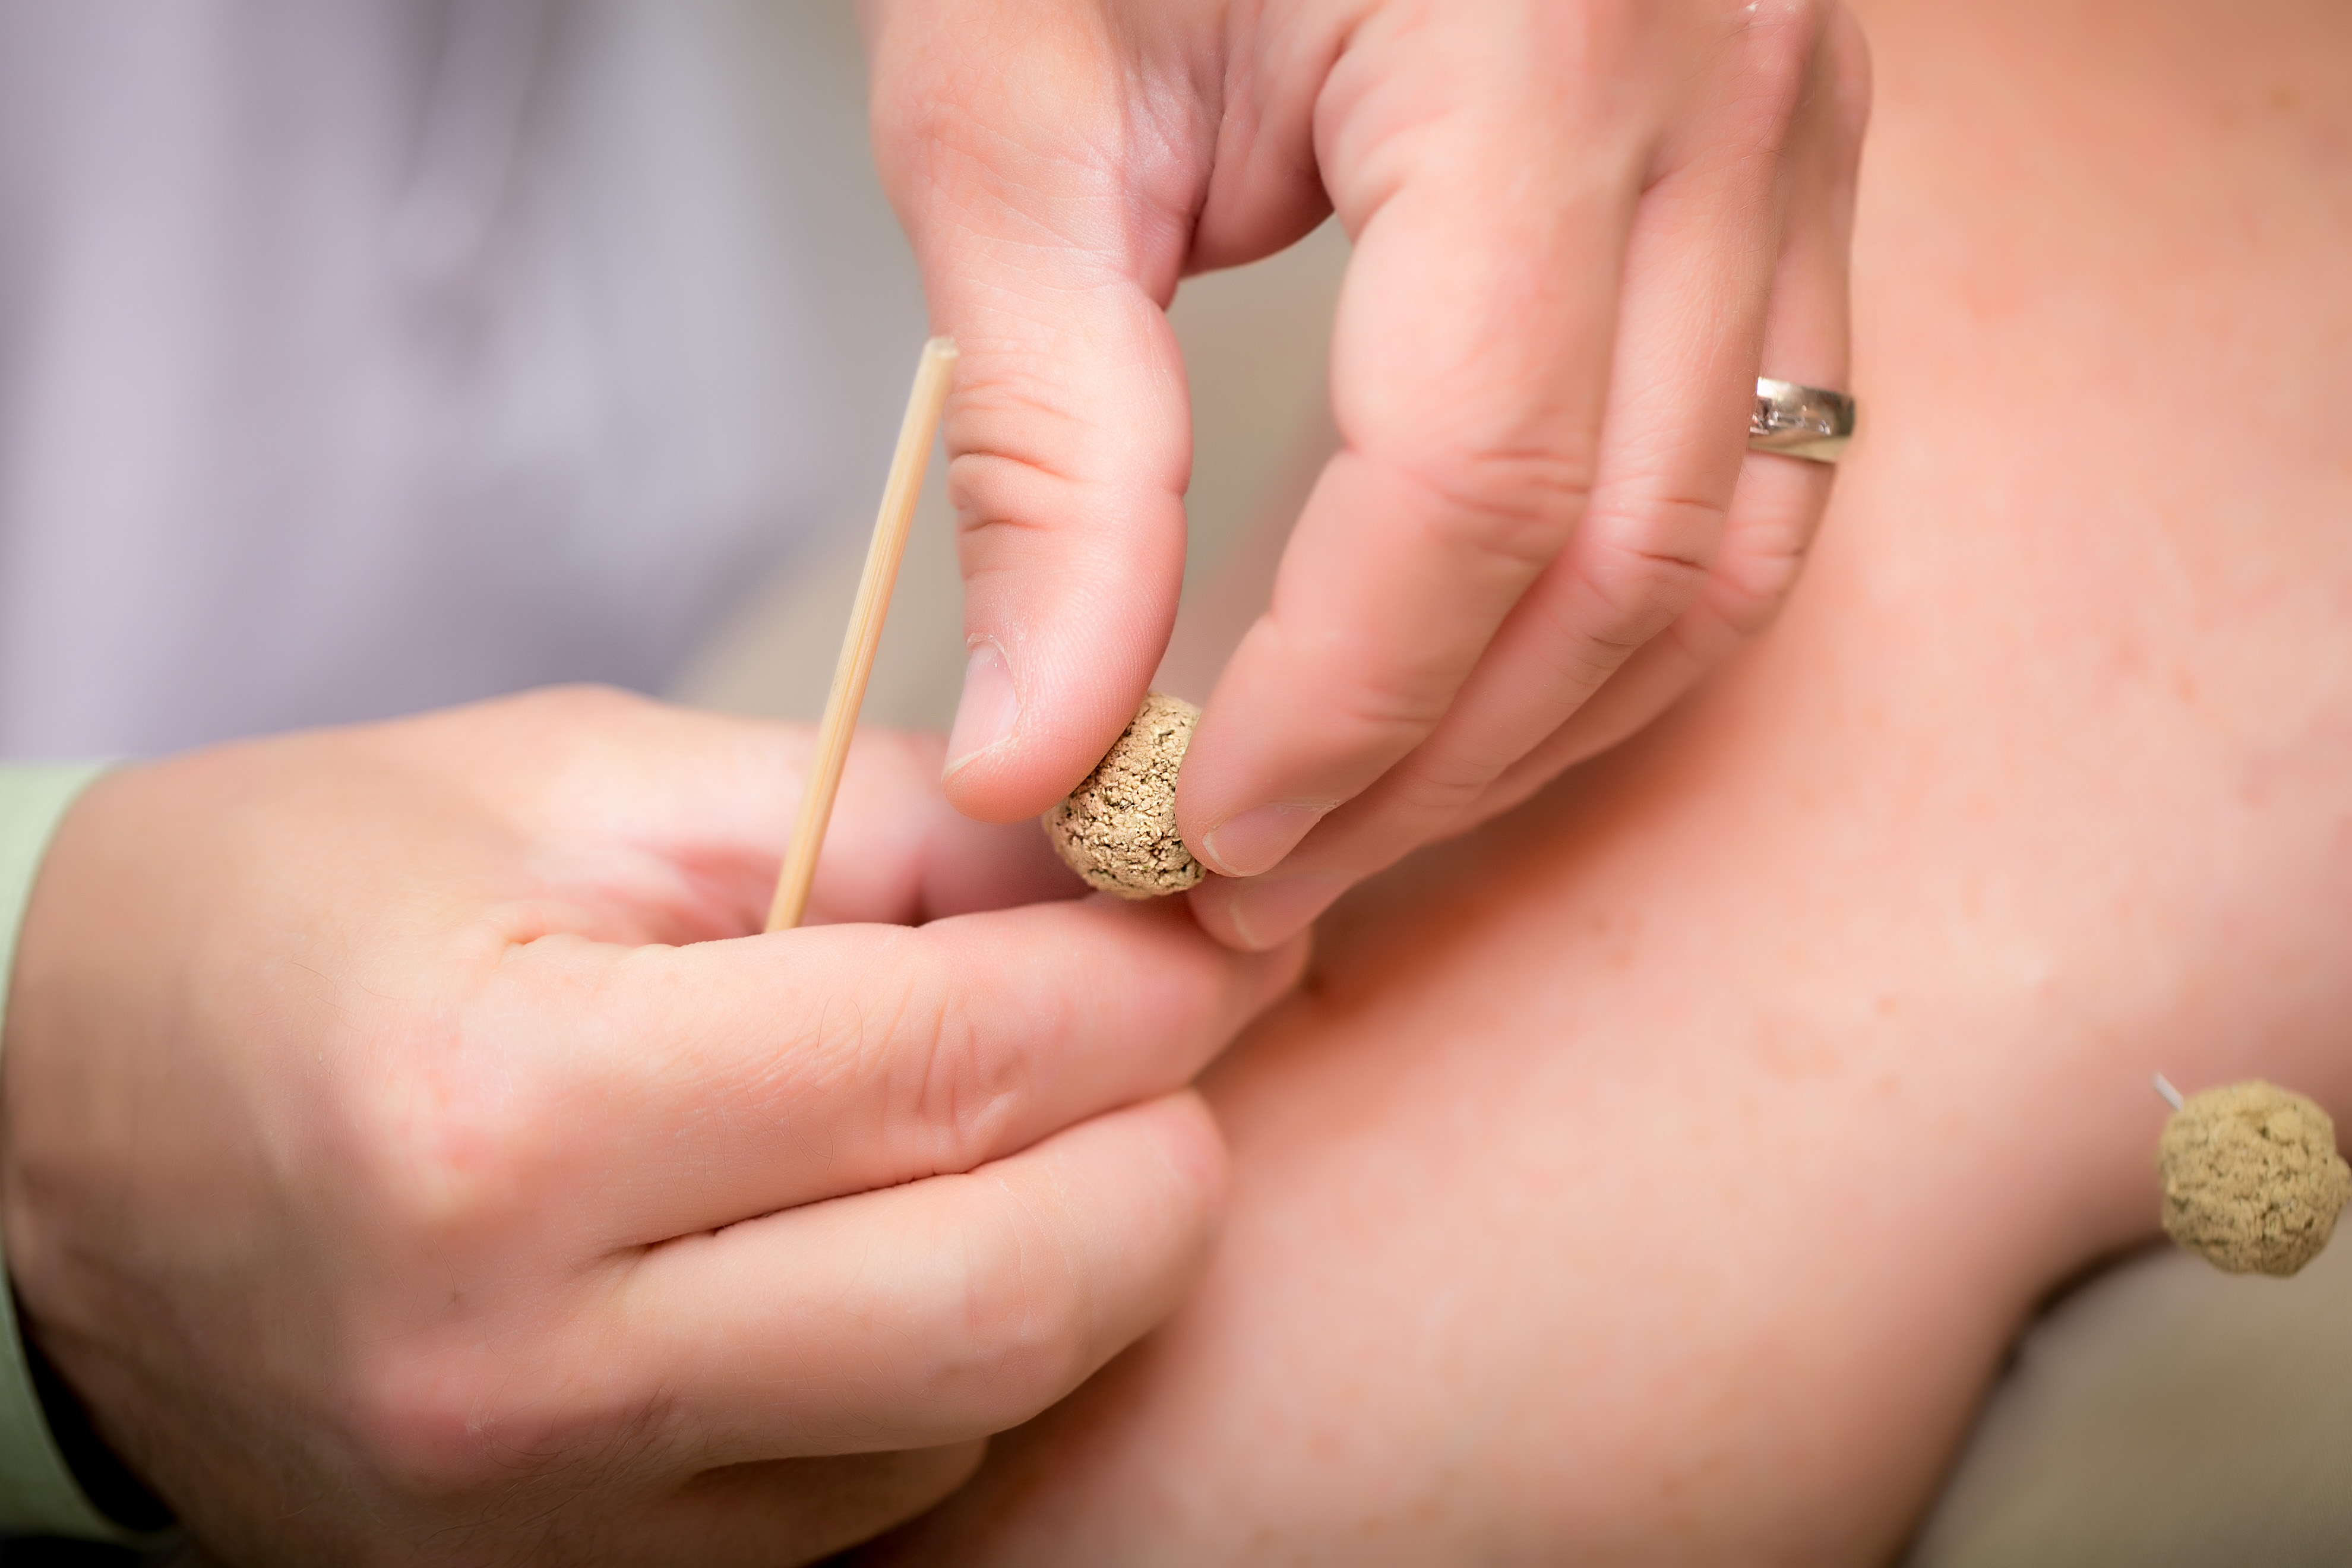 Image of someone inserting an acupuncture needle.